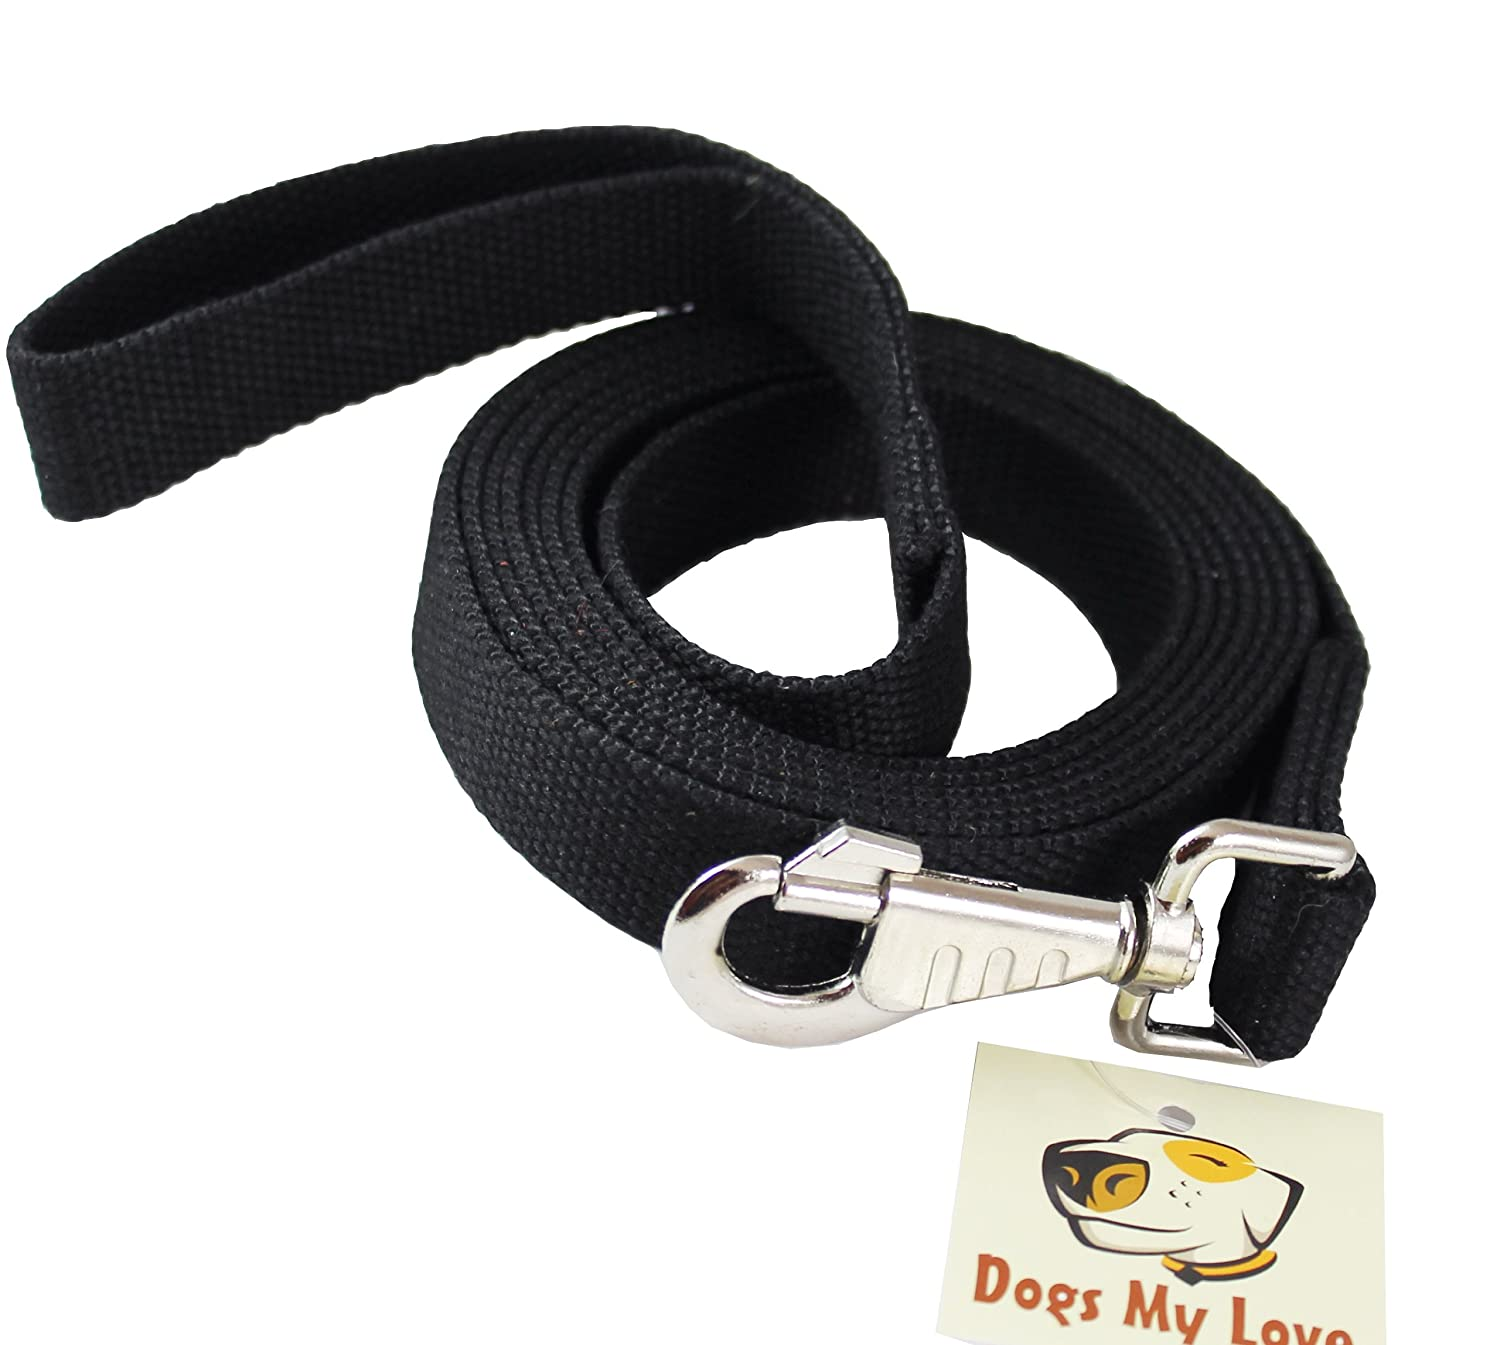 Dog Leash 1  Wide Cotton Web 10 Feet Long for Training Swivel Locking Snap, Pitt Bull, Cane Corso